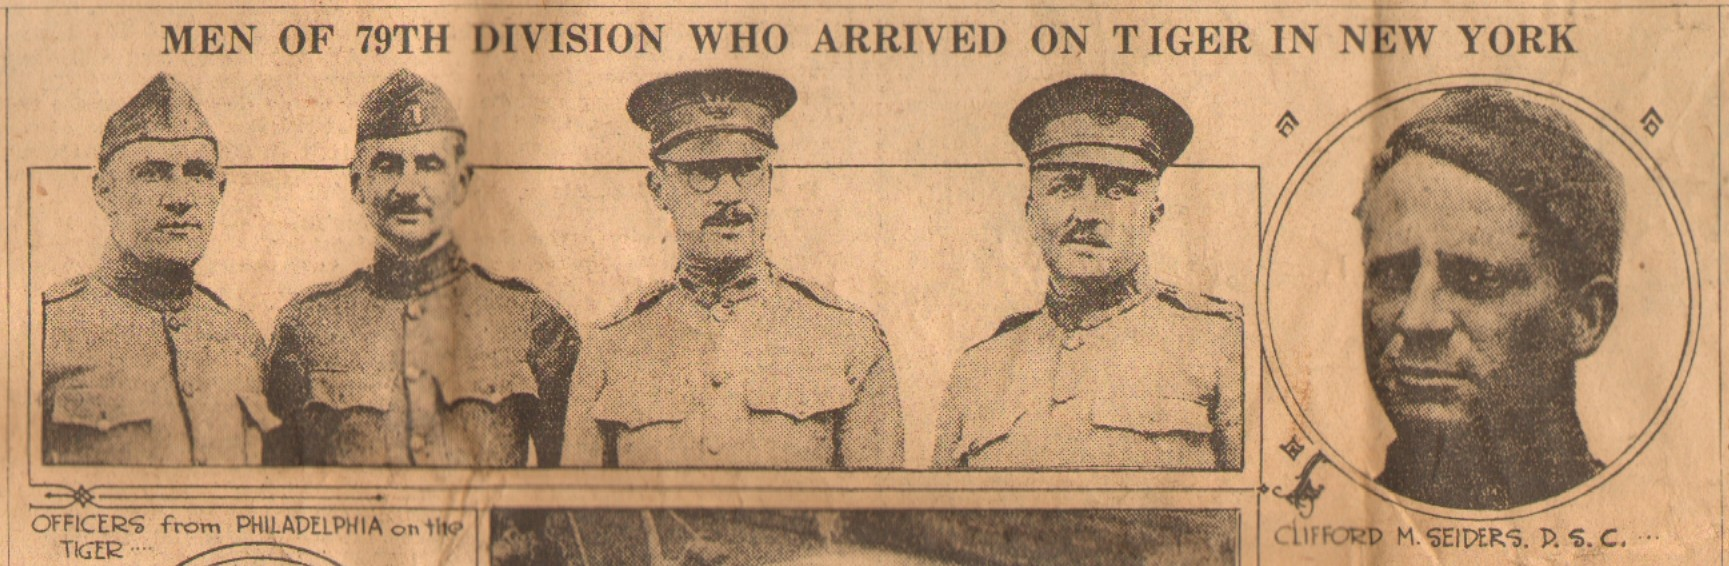 Evening Public Ledger Newspaper - May 27 1919 - Men of the 79th Division who arrived on Tiger in New York